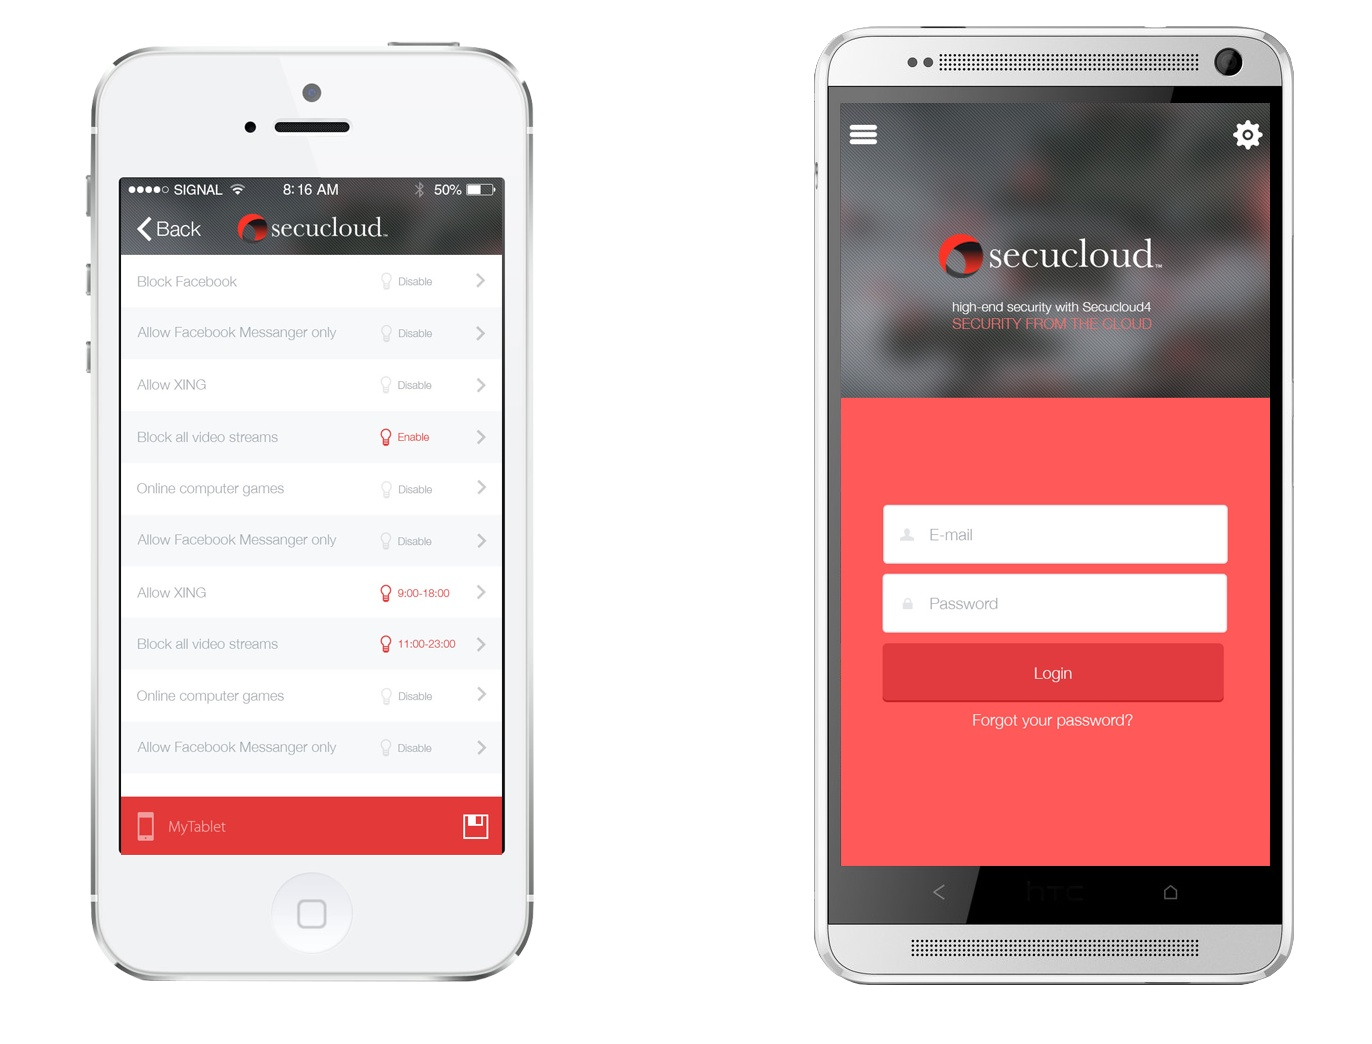 secucloud mobile app